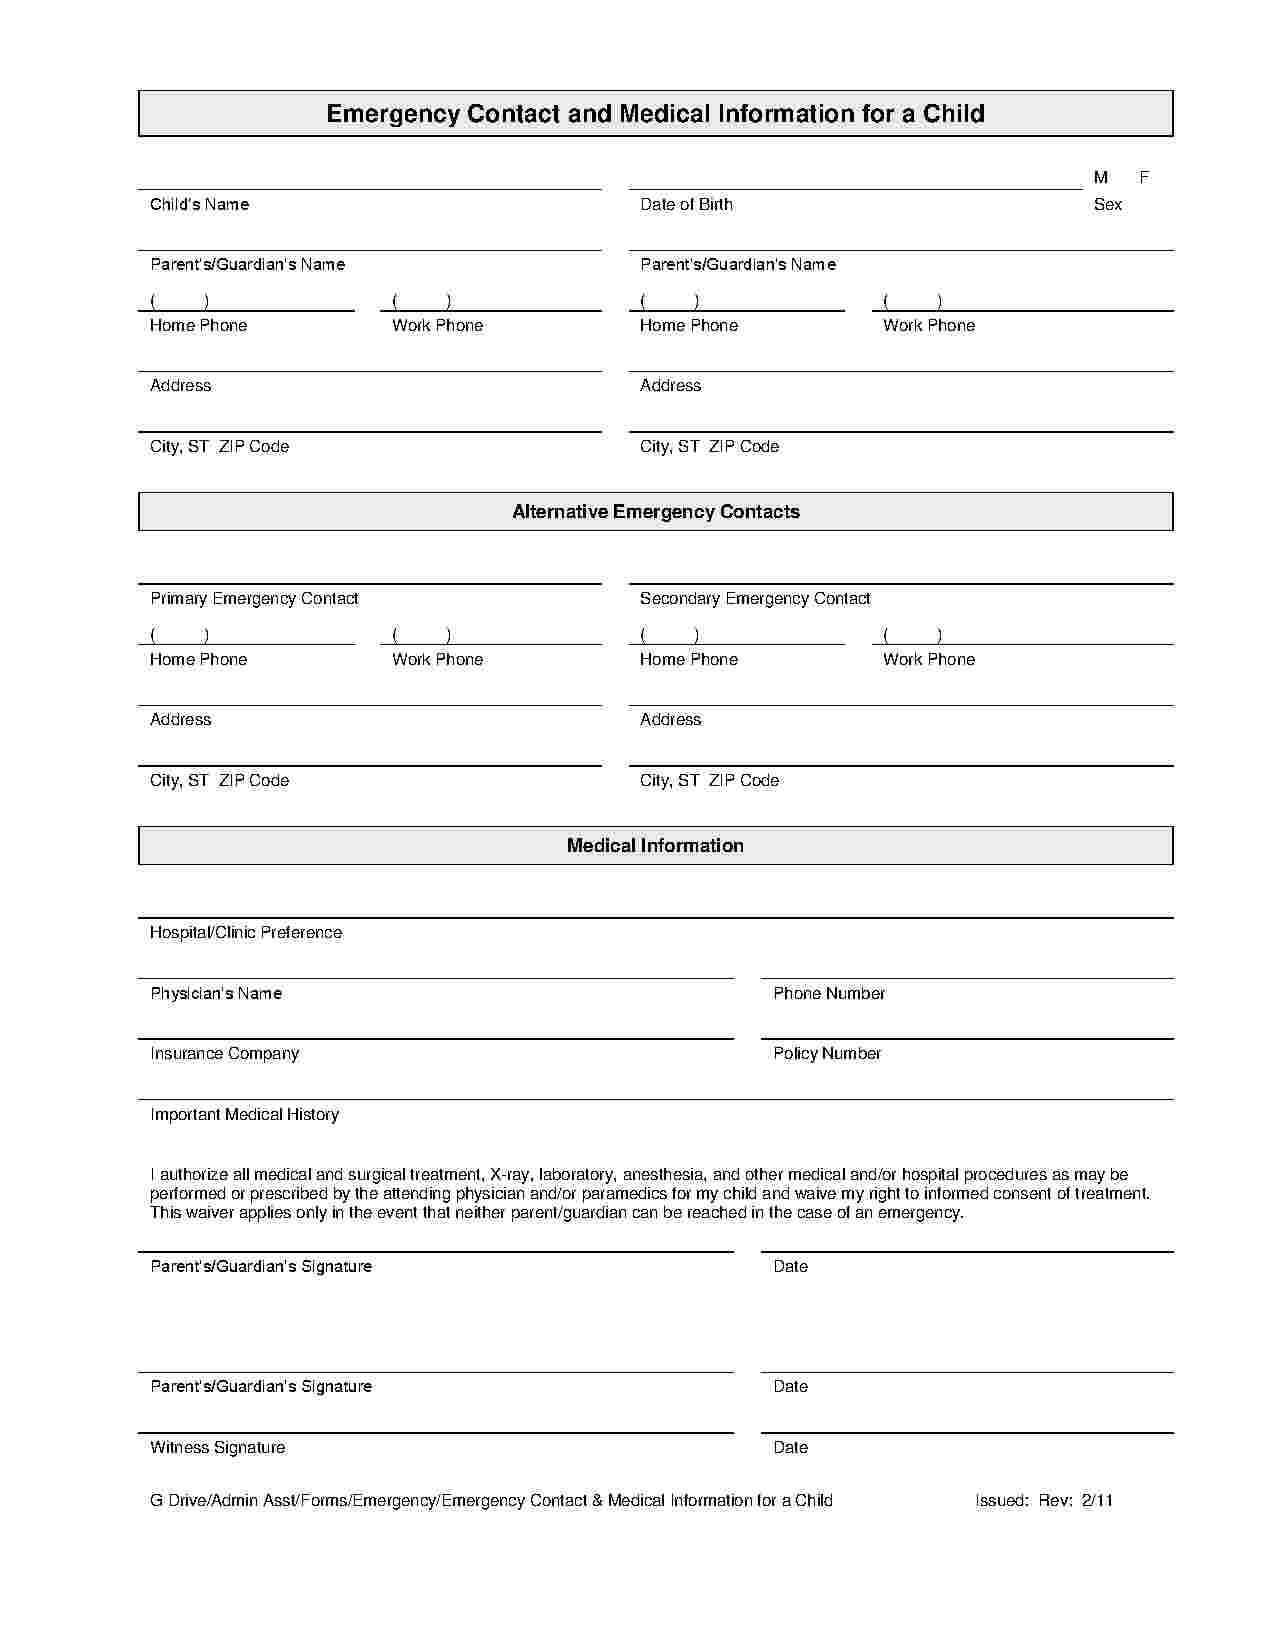 033 Emergency Contact Form Template Excellent Ideas throughout Emergency Contact Card Template